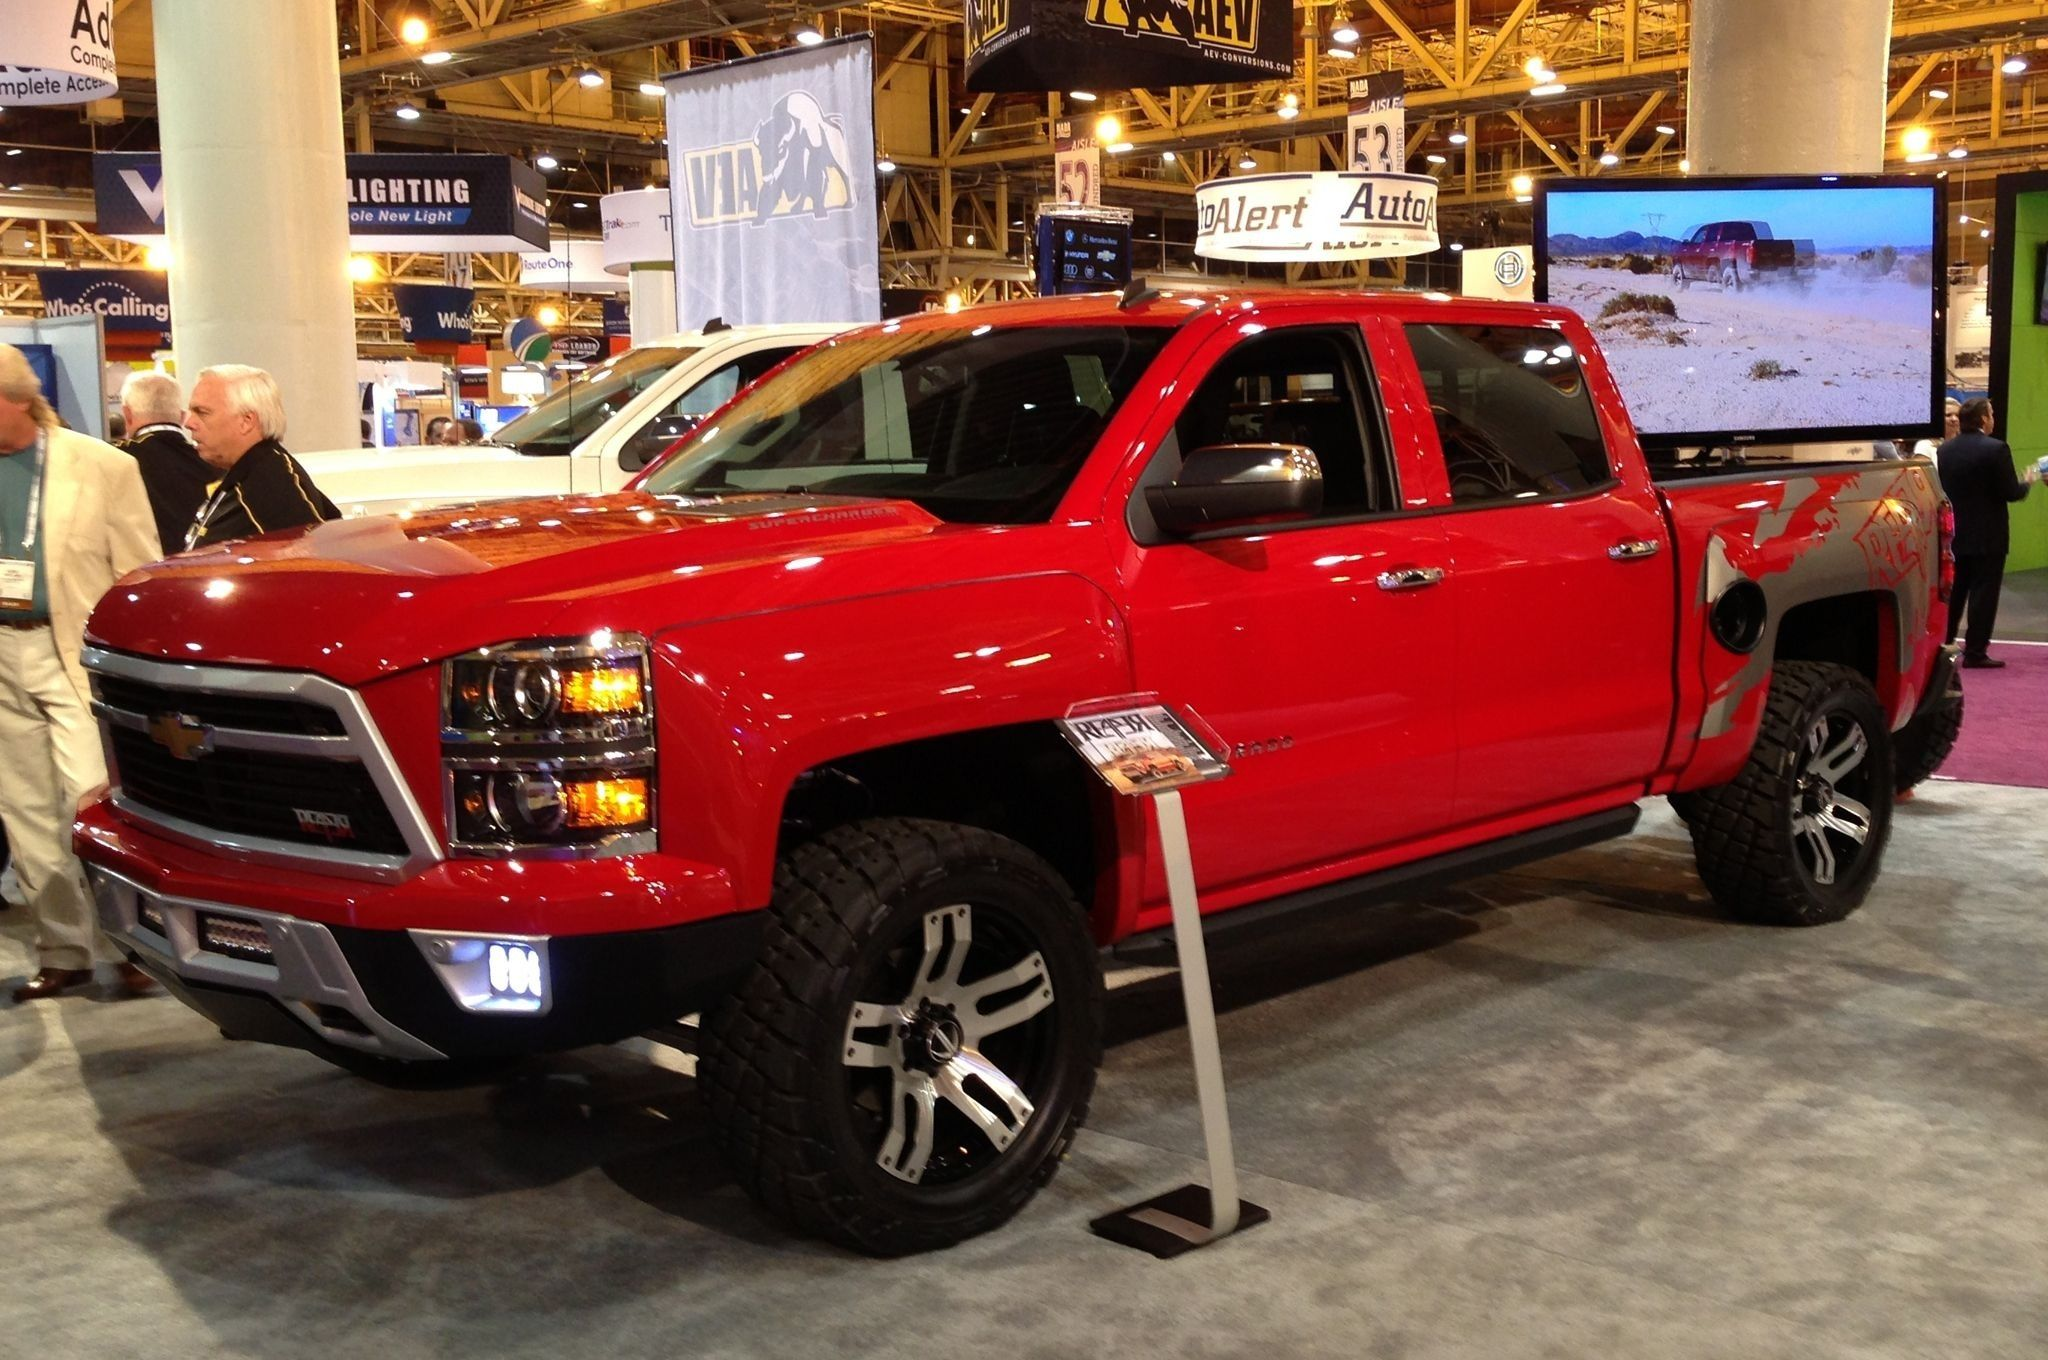 2019 Chevrolet Reaper Picture, Release Date, And Review